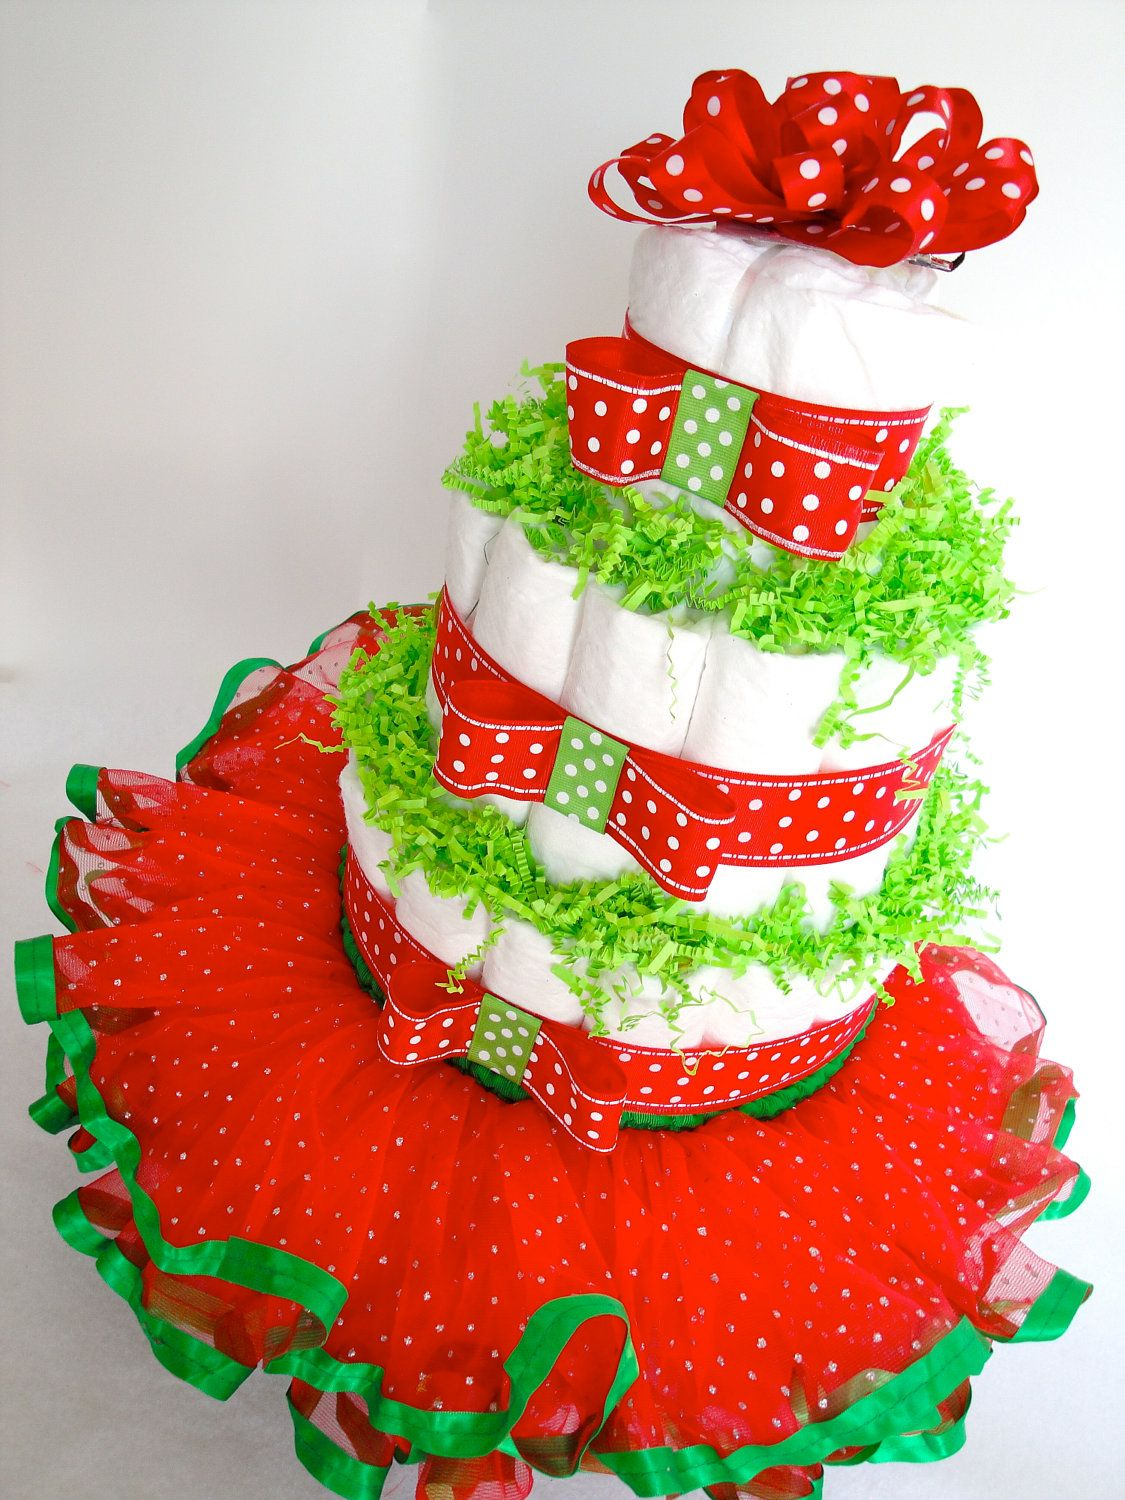 Christmas Diaper Cake Festive Red Green Tutu Baby Dr Brownamp039s Zebra Lovey With Pink One Piece Pacifier Dot Bayi Shower Centerpiece 3 Tier 6500 Via Etsy